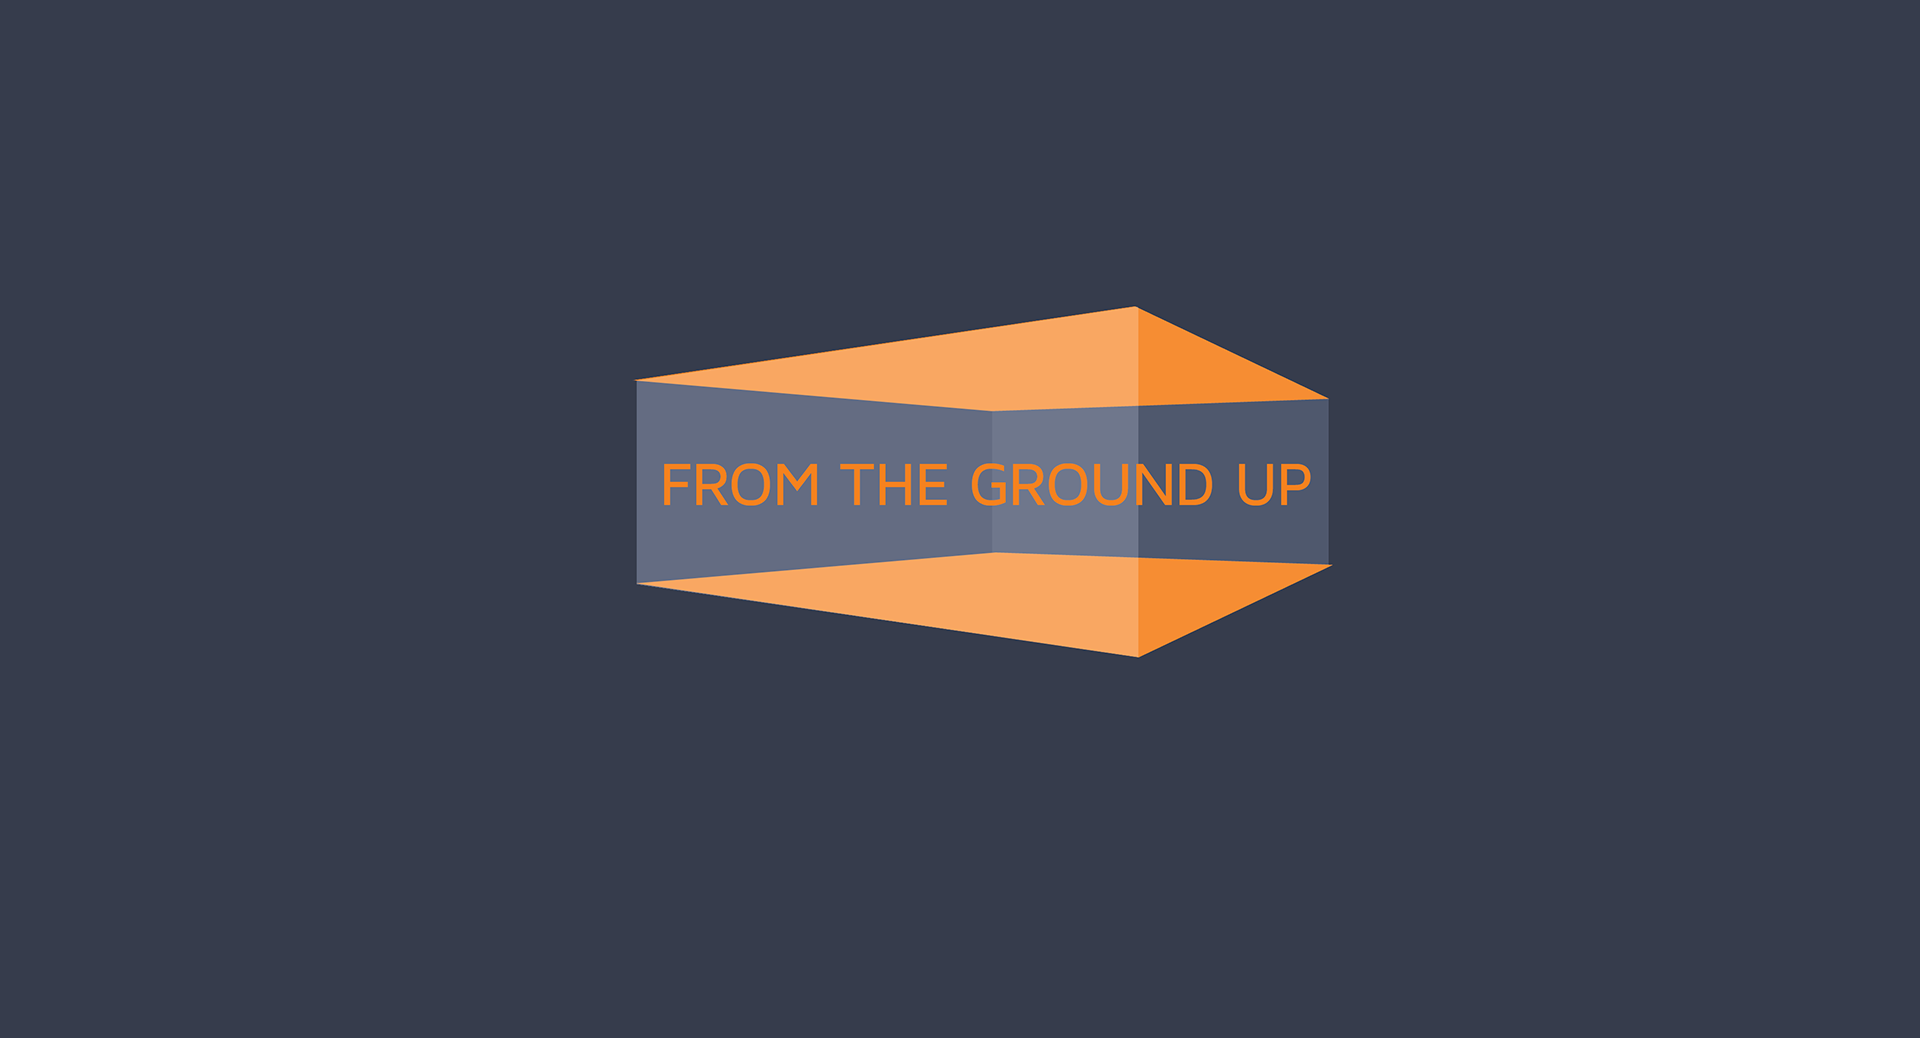 Polyfoam brand - from the ground up